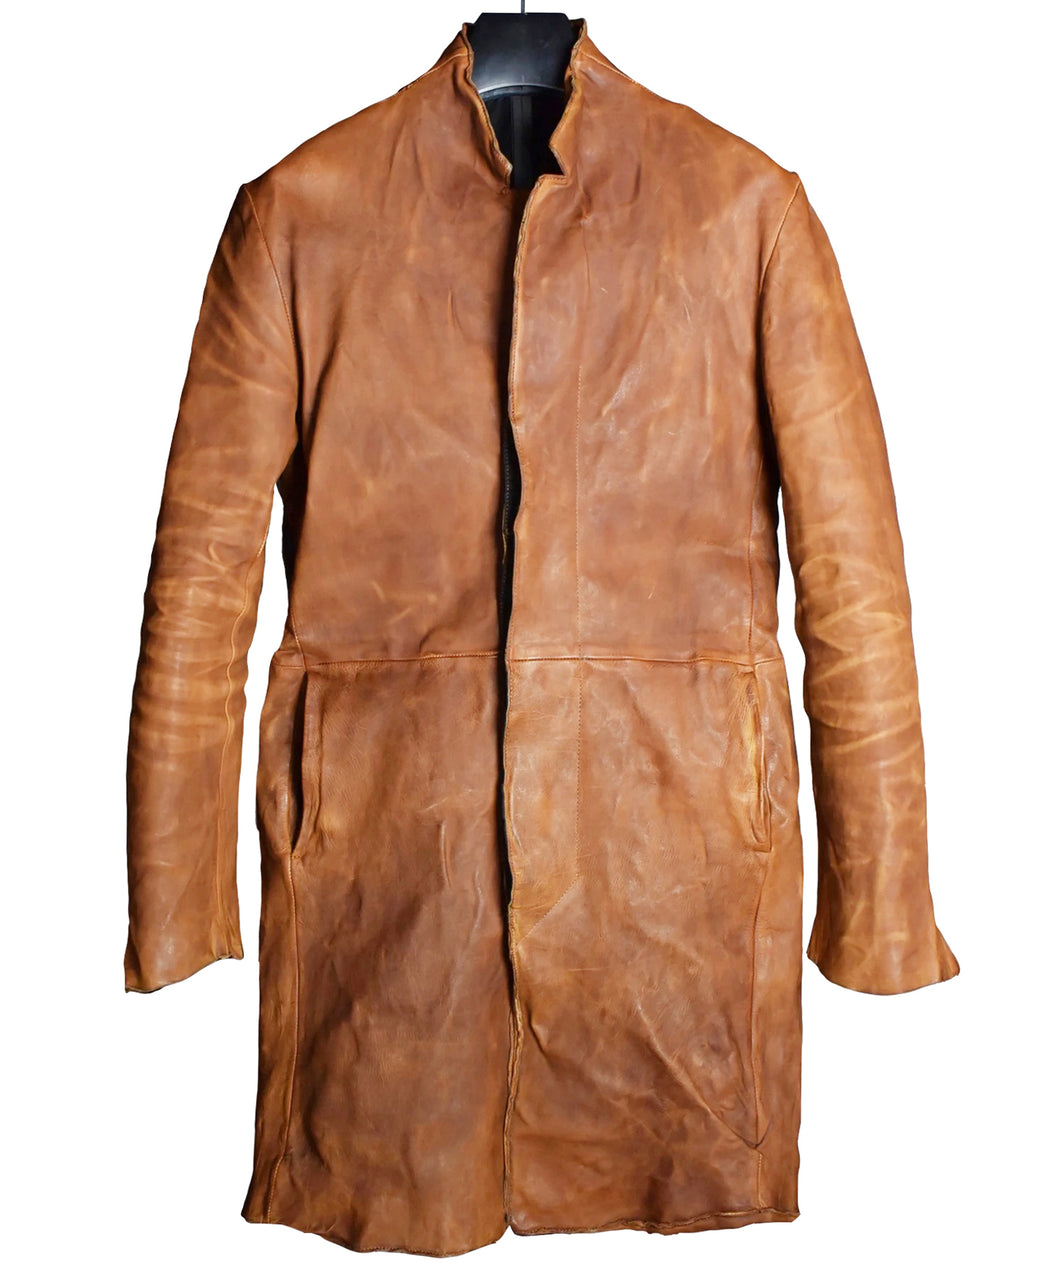 Domestic Vegetable Full Tanned Calf Skin Garment Dyed Long Jacket